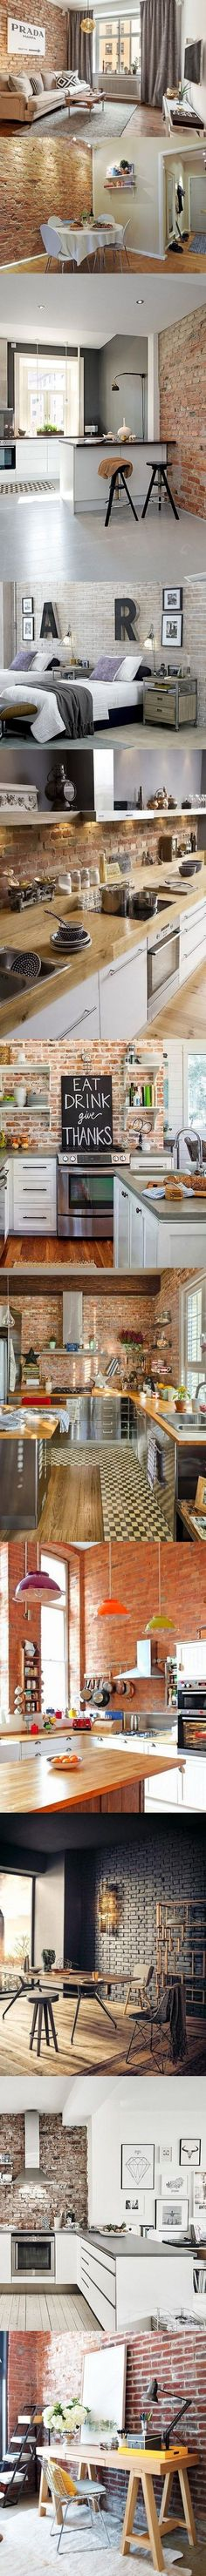 I could rearrange my parlor to show more of the exposed brick Home Interior, Interior Architecture, Interior And Exterior, Interior Decorating, Design Loft, House Design, Urban Loft, Loft Style, Exposed Brick